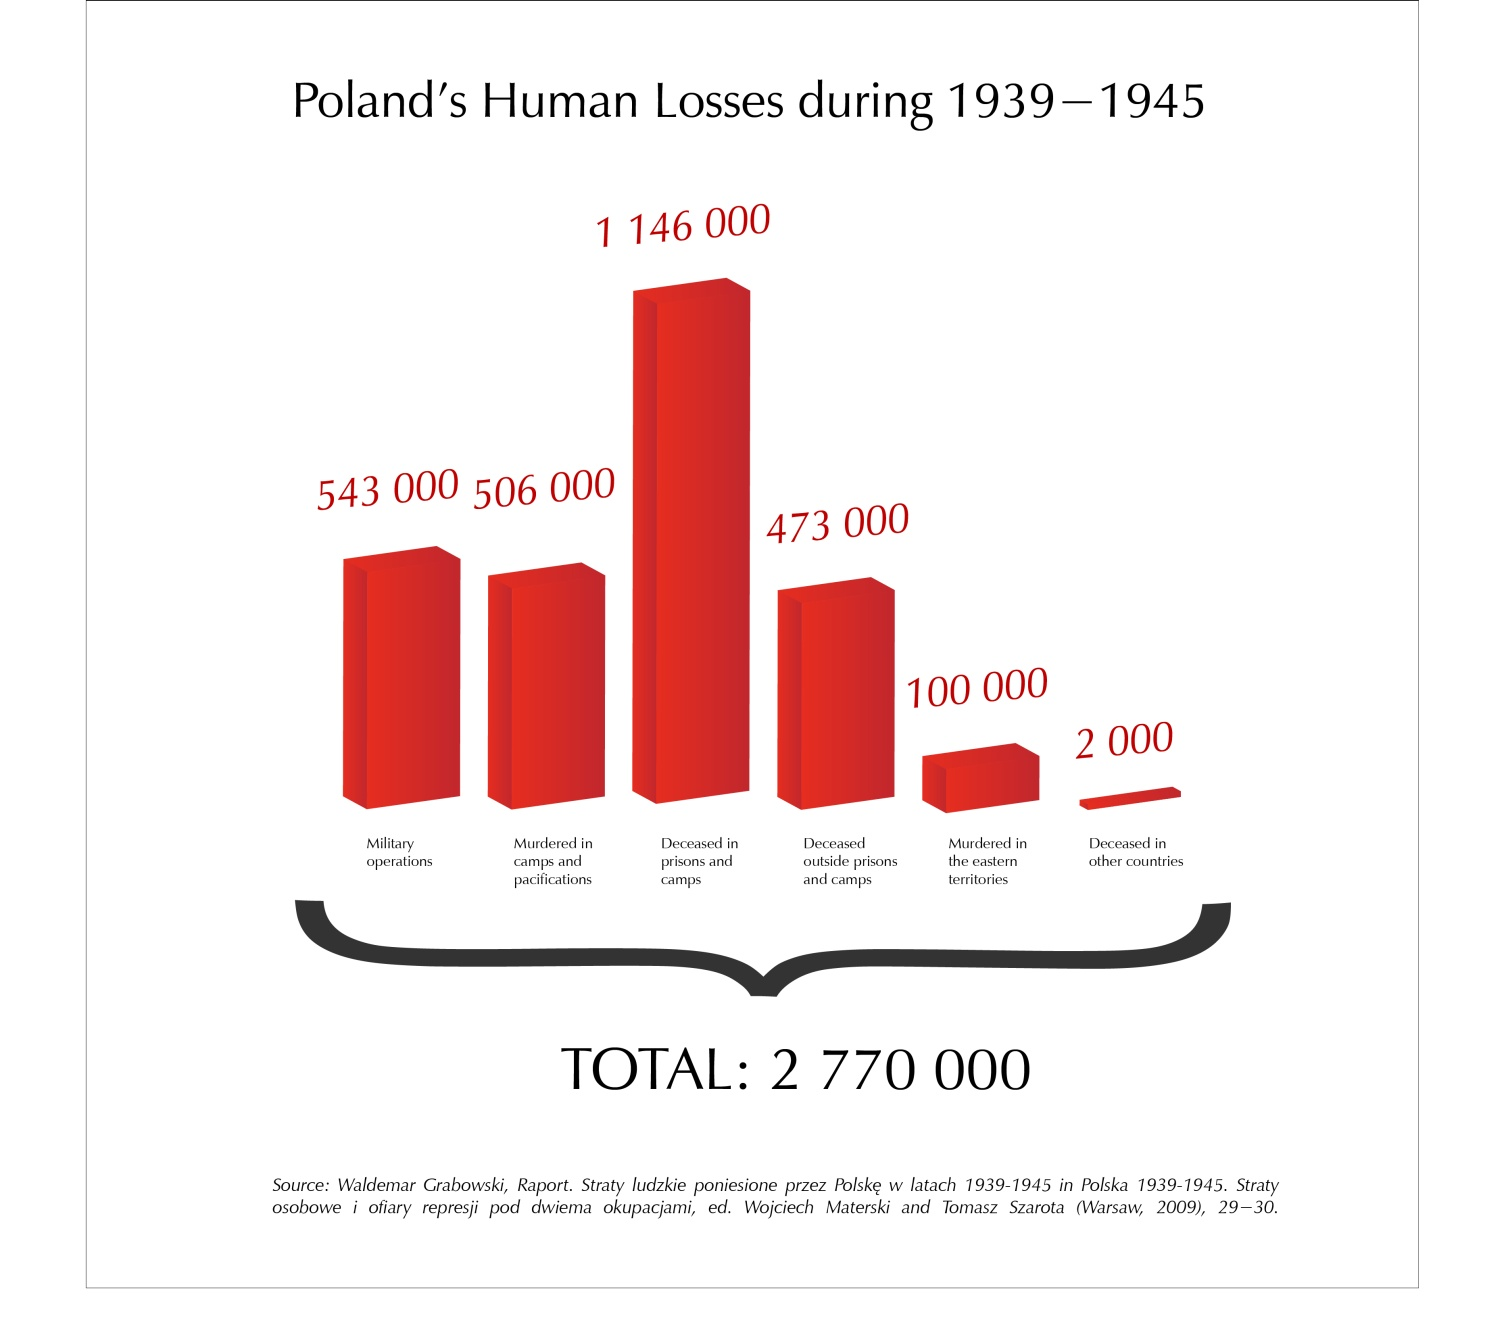 Poland's Human Losses during 1939-1945